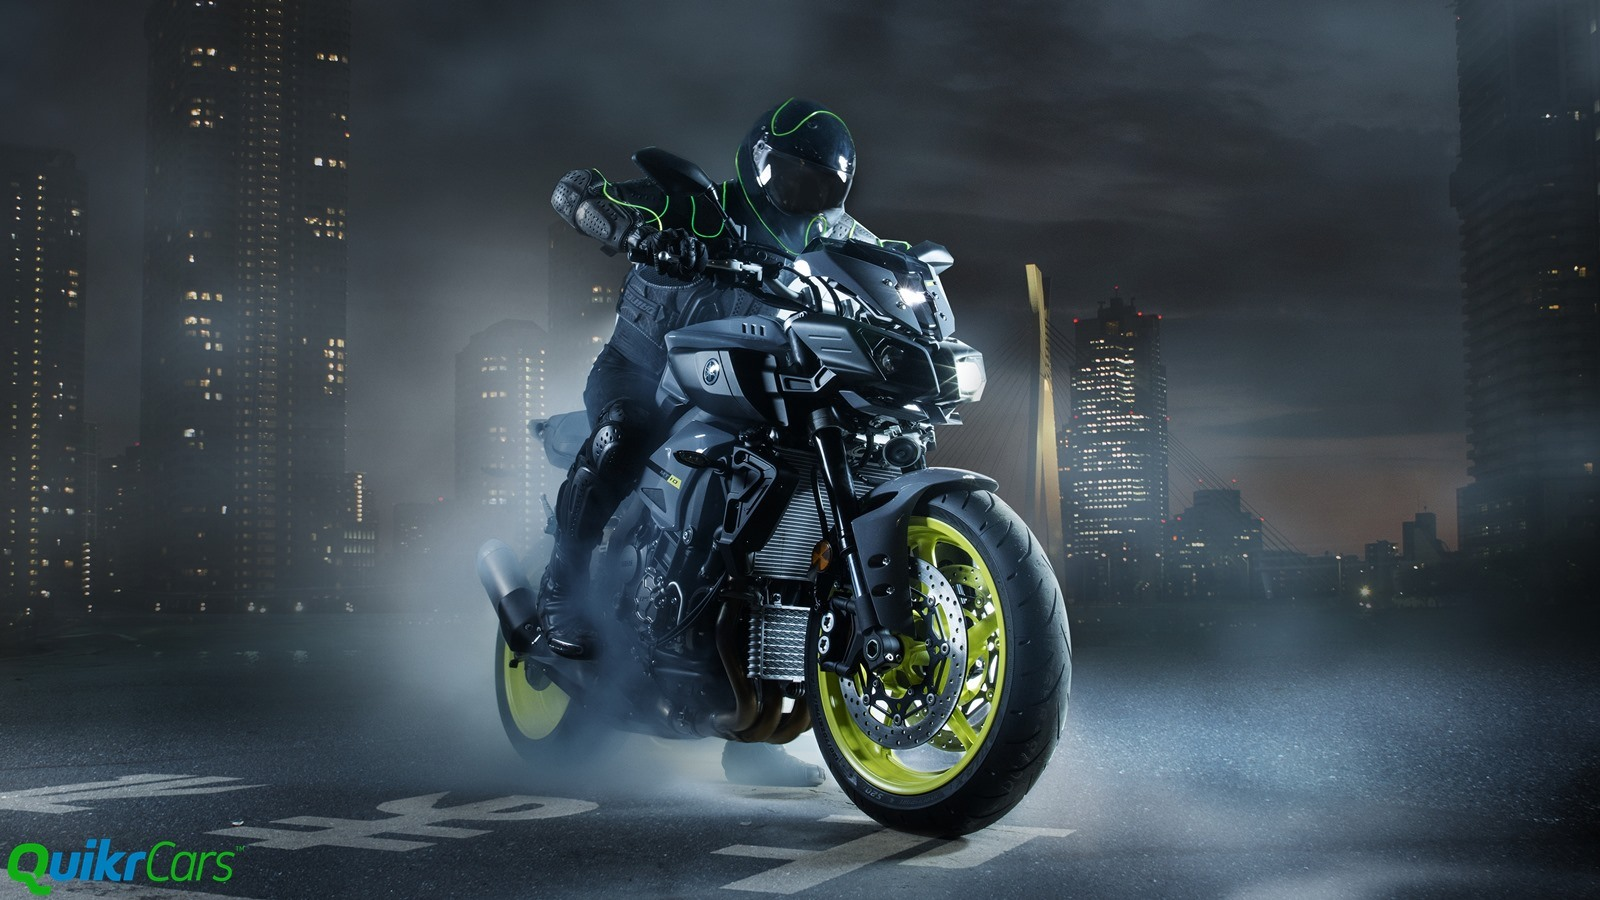 All New 2016 Yamaha Mt 10 Revealed At Eicma 2015 Quikr Blog